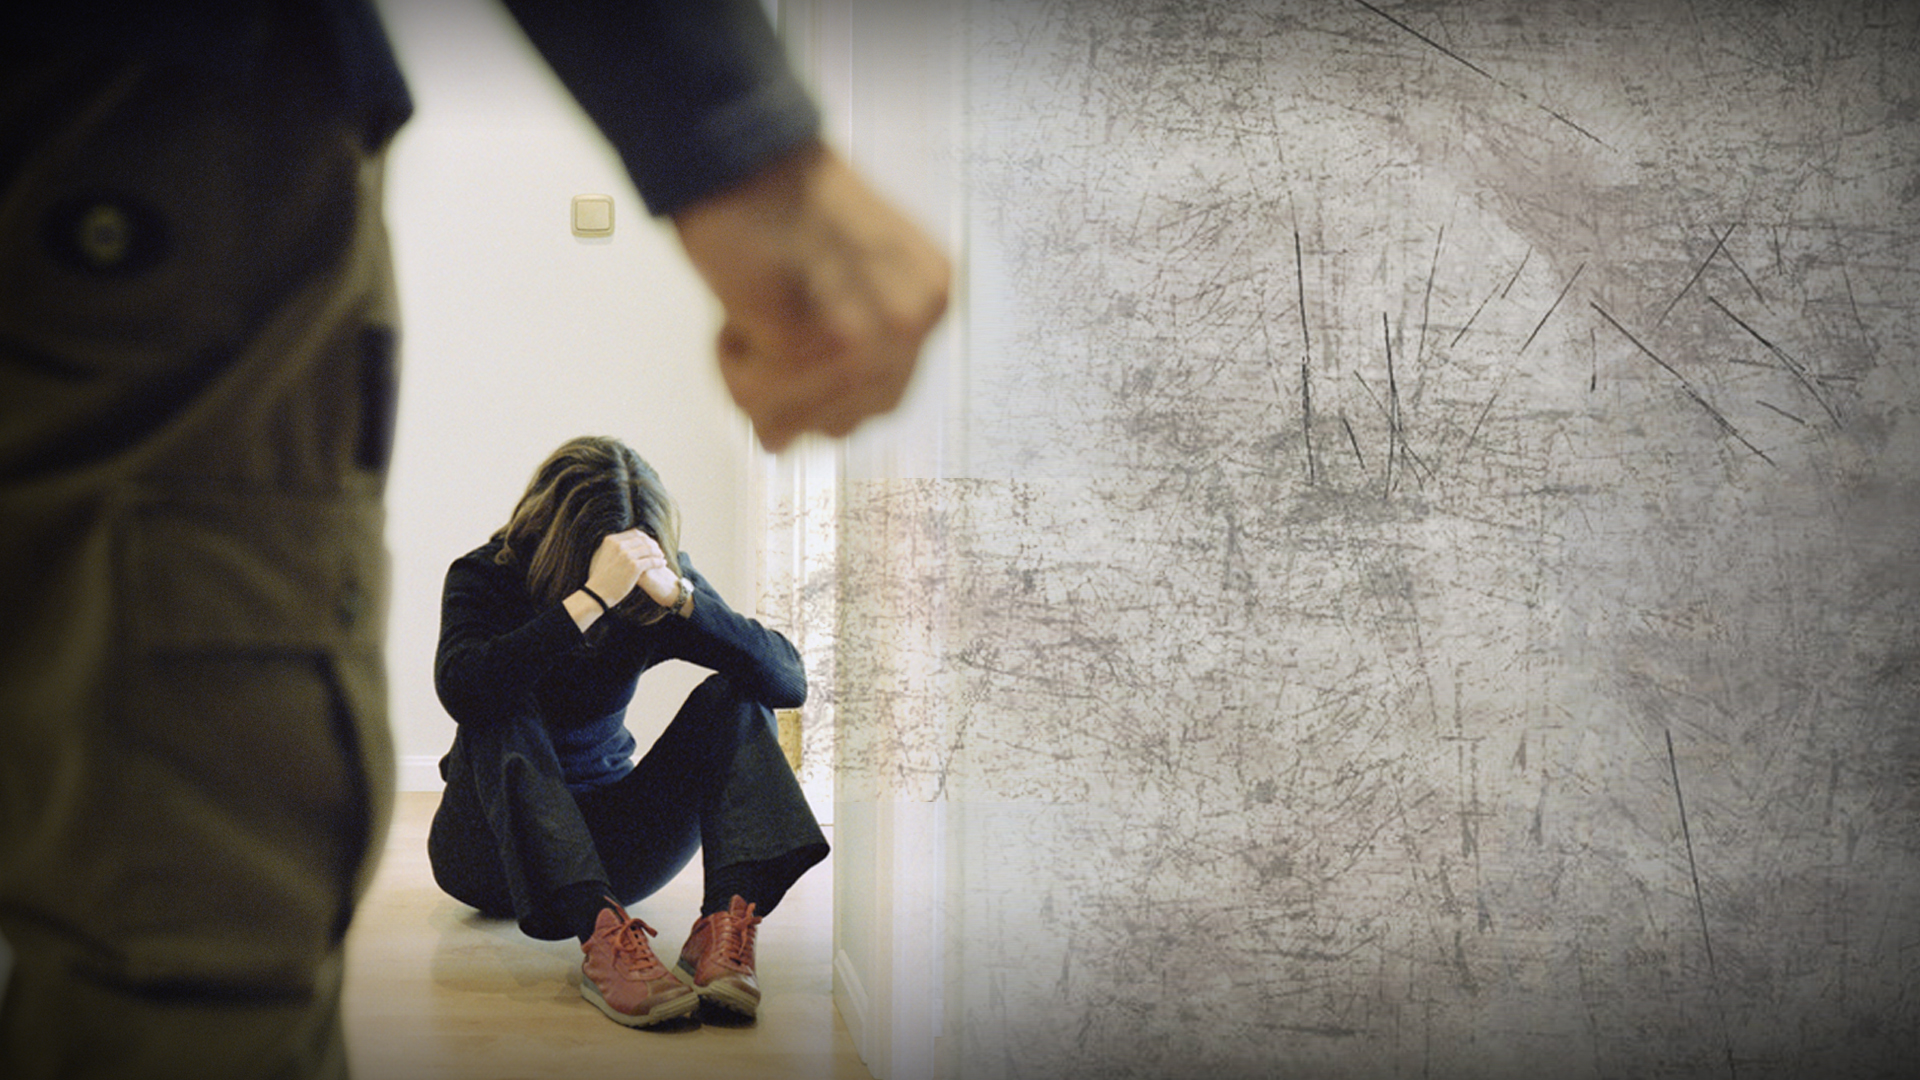 Violence against women is mostly unacceptable